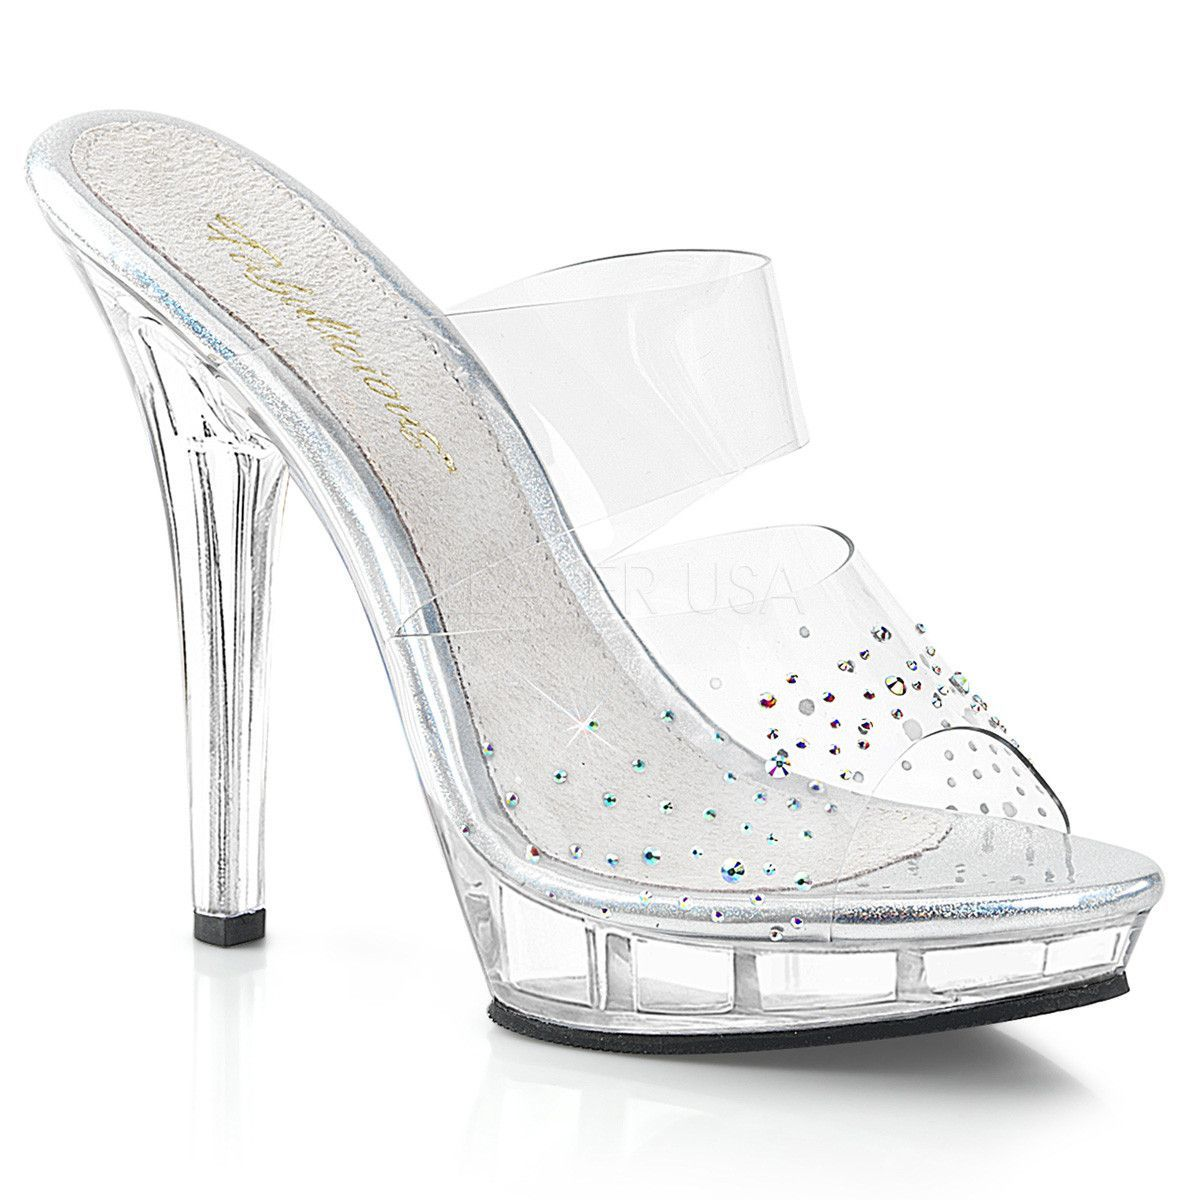 f1390a8580d GALA-08MMG Fabulicious Sexy Shoes 4 1 2 Inch Heel Clear Posing Glitter  Sandals